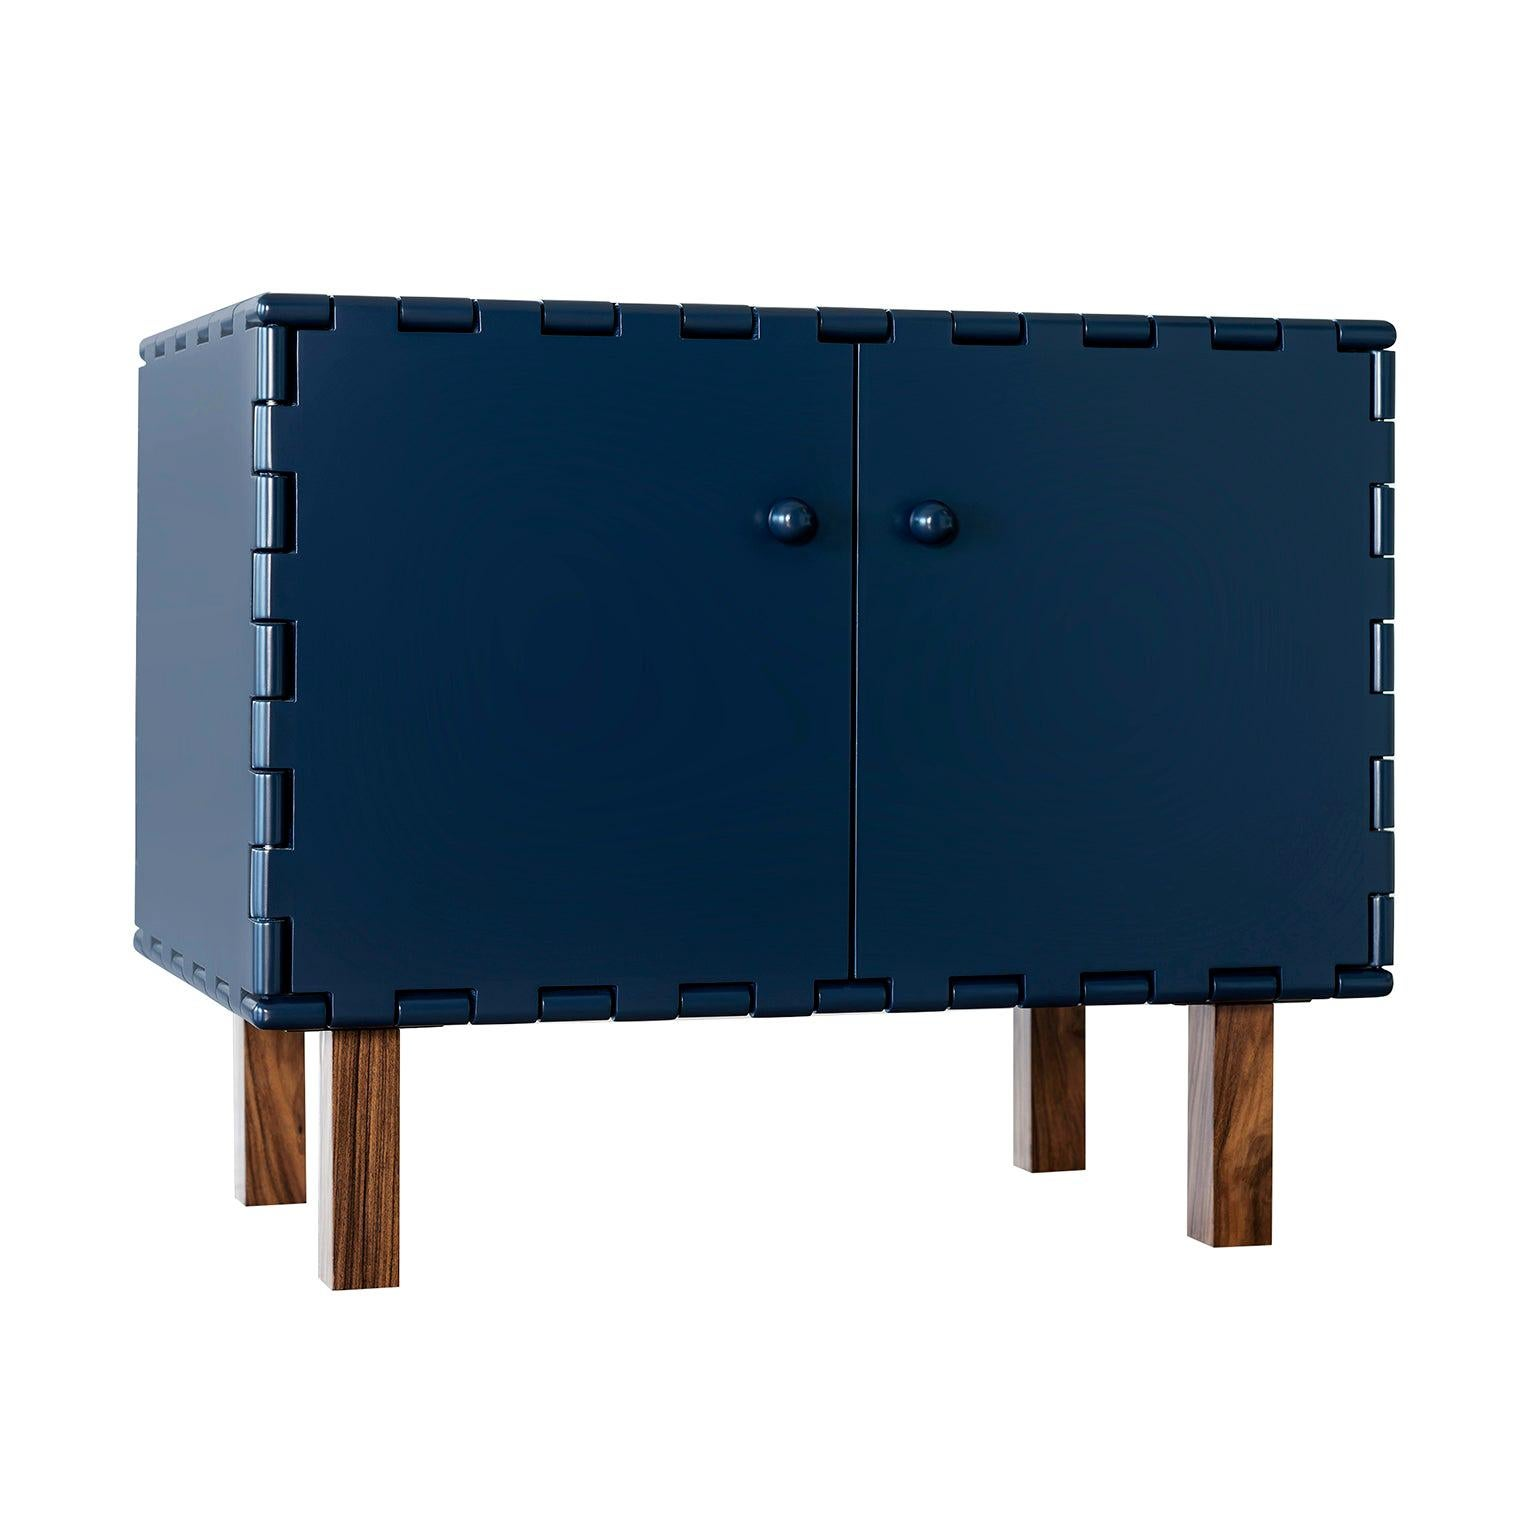 Finest Handcrafted Lacquered Interlocking Wood Panels Nightstand, Cabinet D